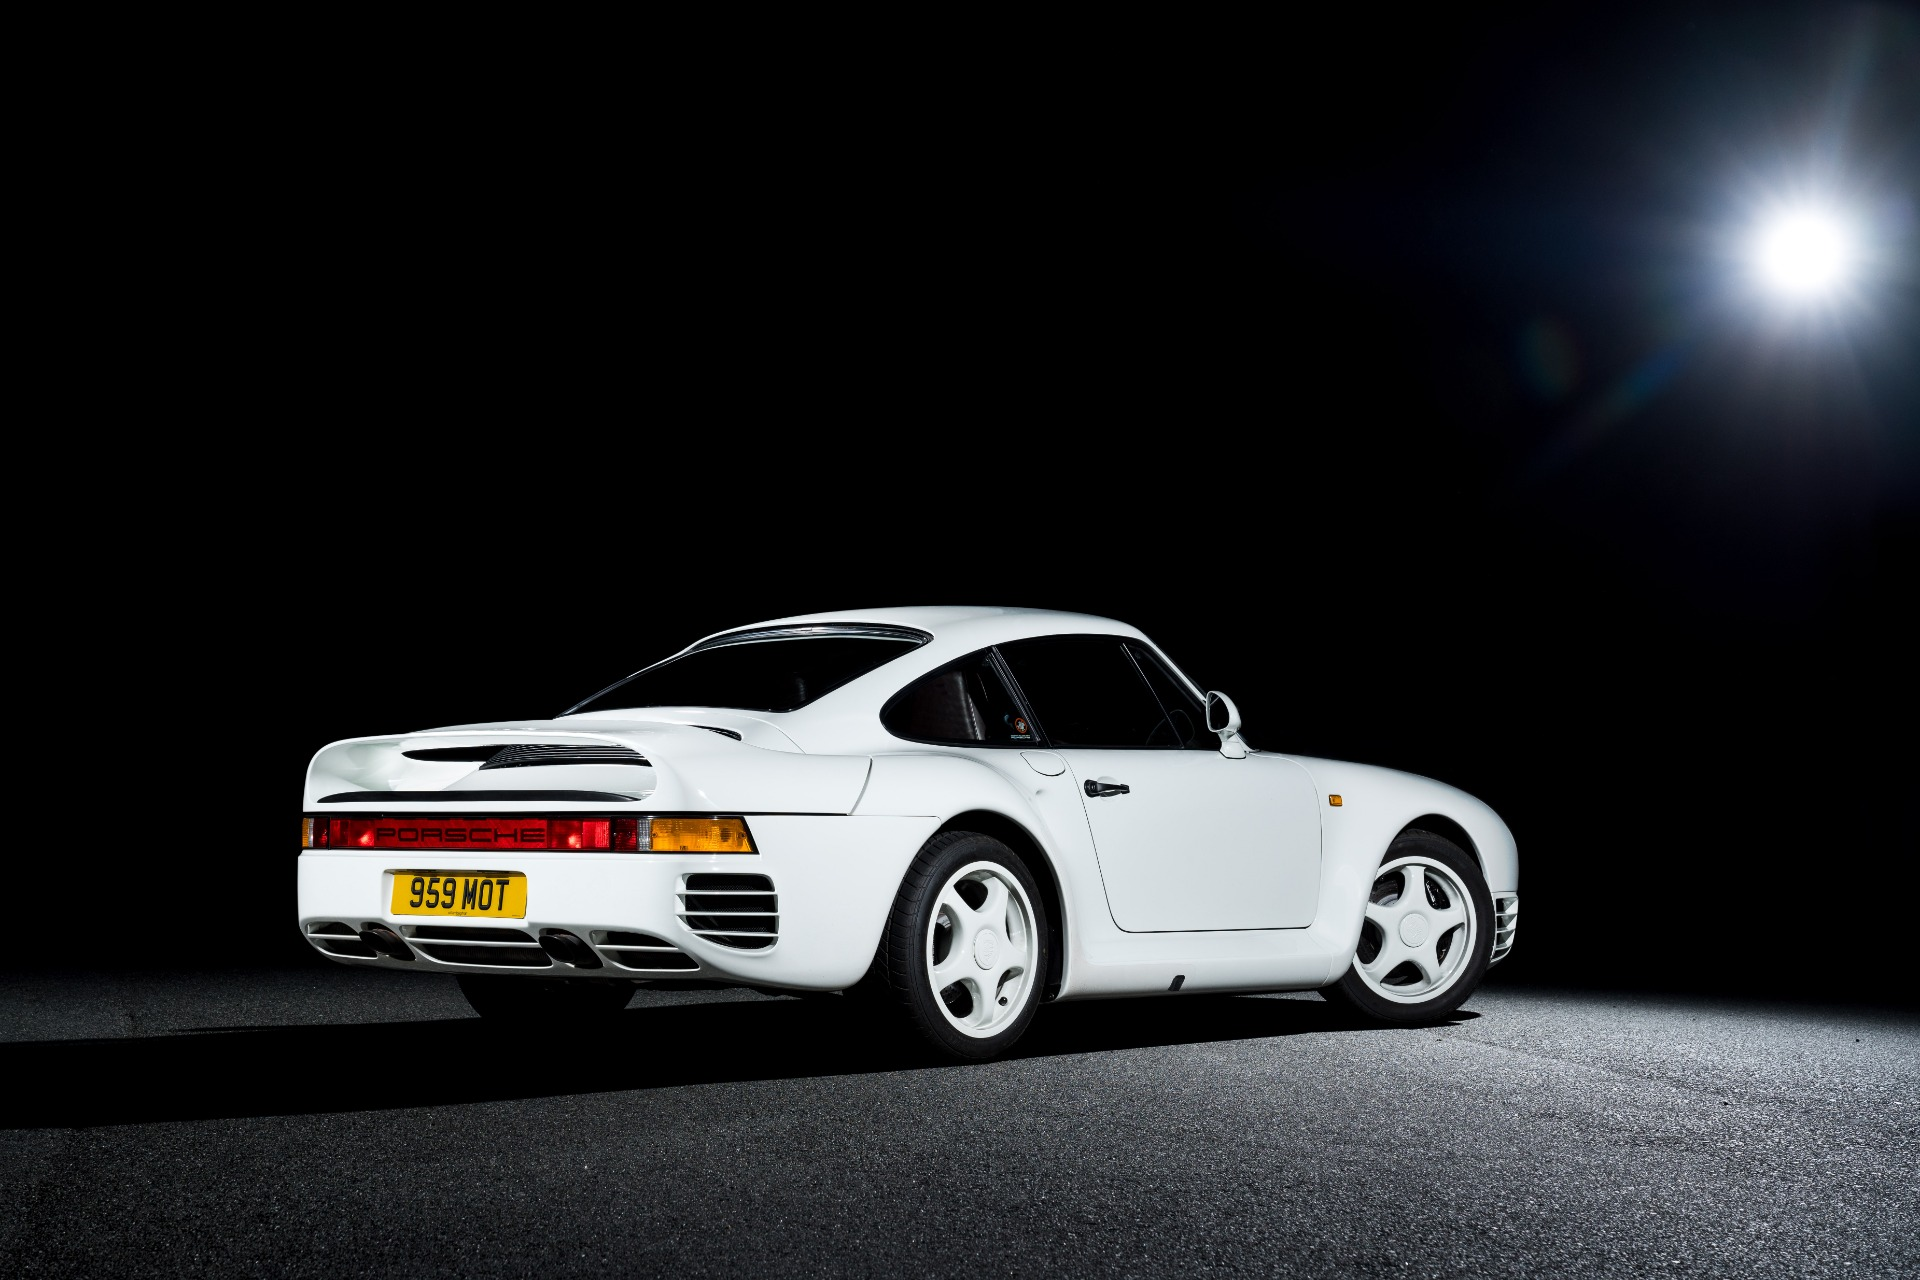 Used 1988 Porsche 959 KOMFORT COUPE / AWD / 6-SPEED MANUAL / ORIGINAL SUPERCAR for sale $1,399,999 at Formula Imports in Charlotte NC 28227 6